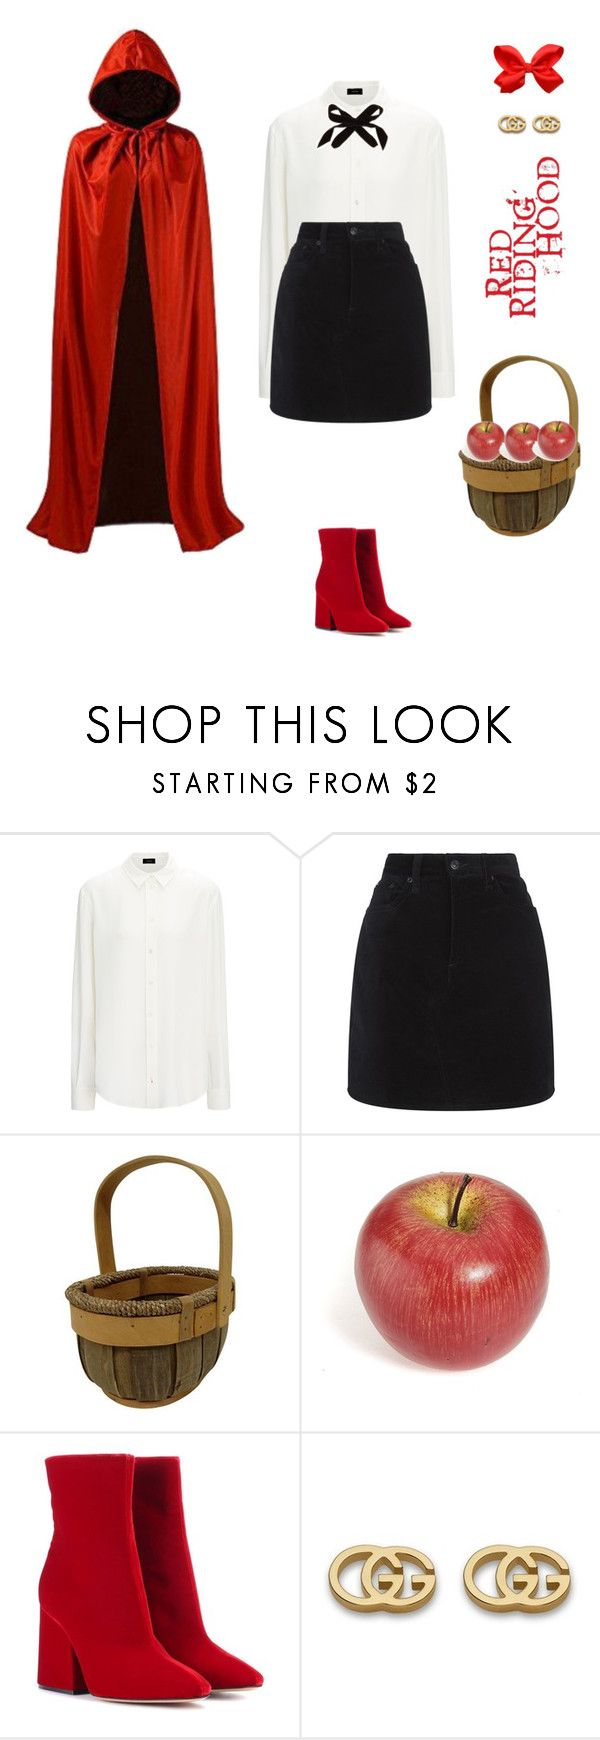 """""""Red riding hood costume!"""" by sebolita ❤ liked on Polyvore featuring Joseph, rag & bone, Masquerade, Maison Margiela, Gucci and Lulu Frost"""